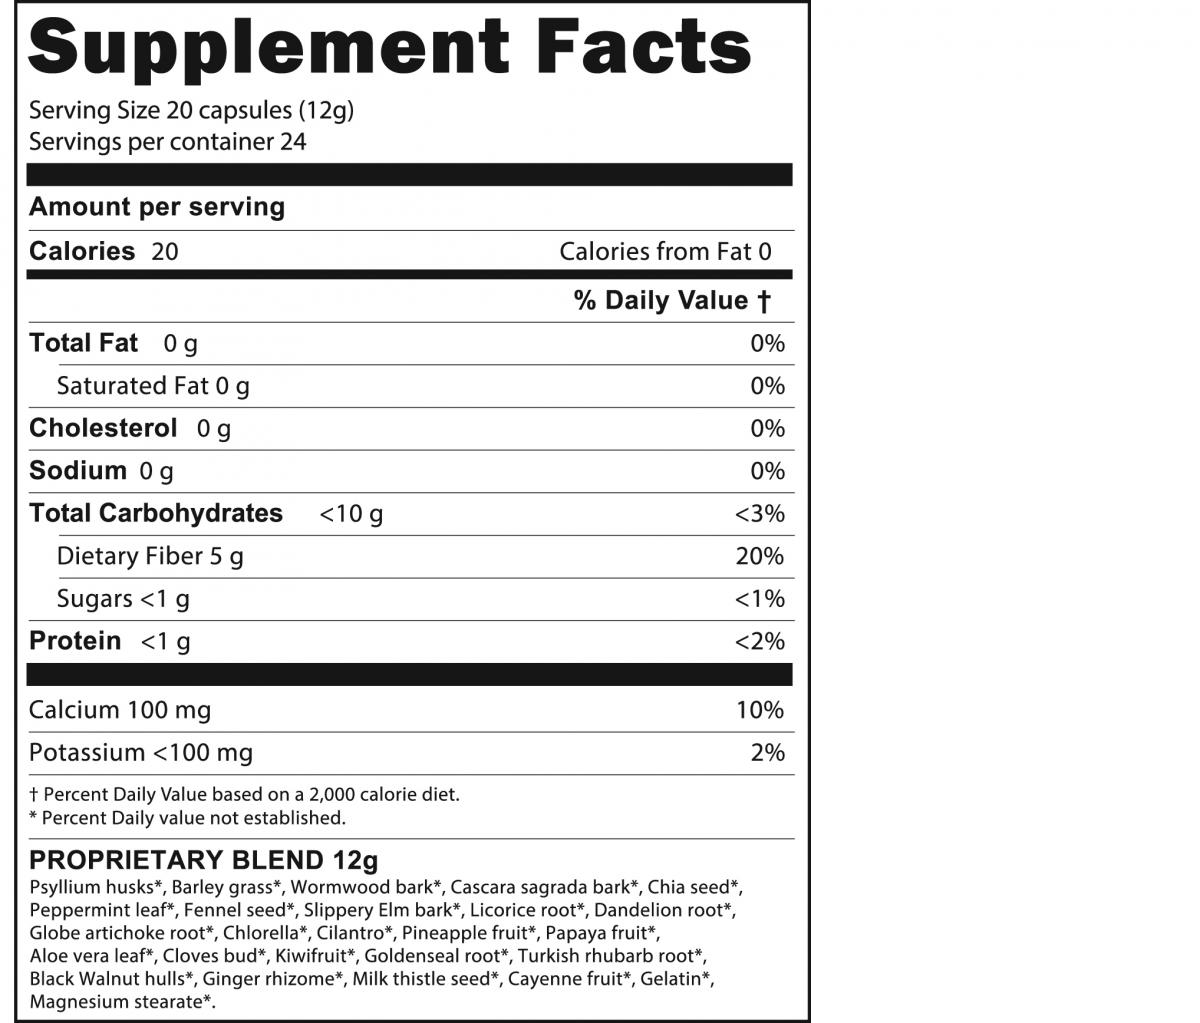 Supplement facts for the Ultimate Herbal Detox program